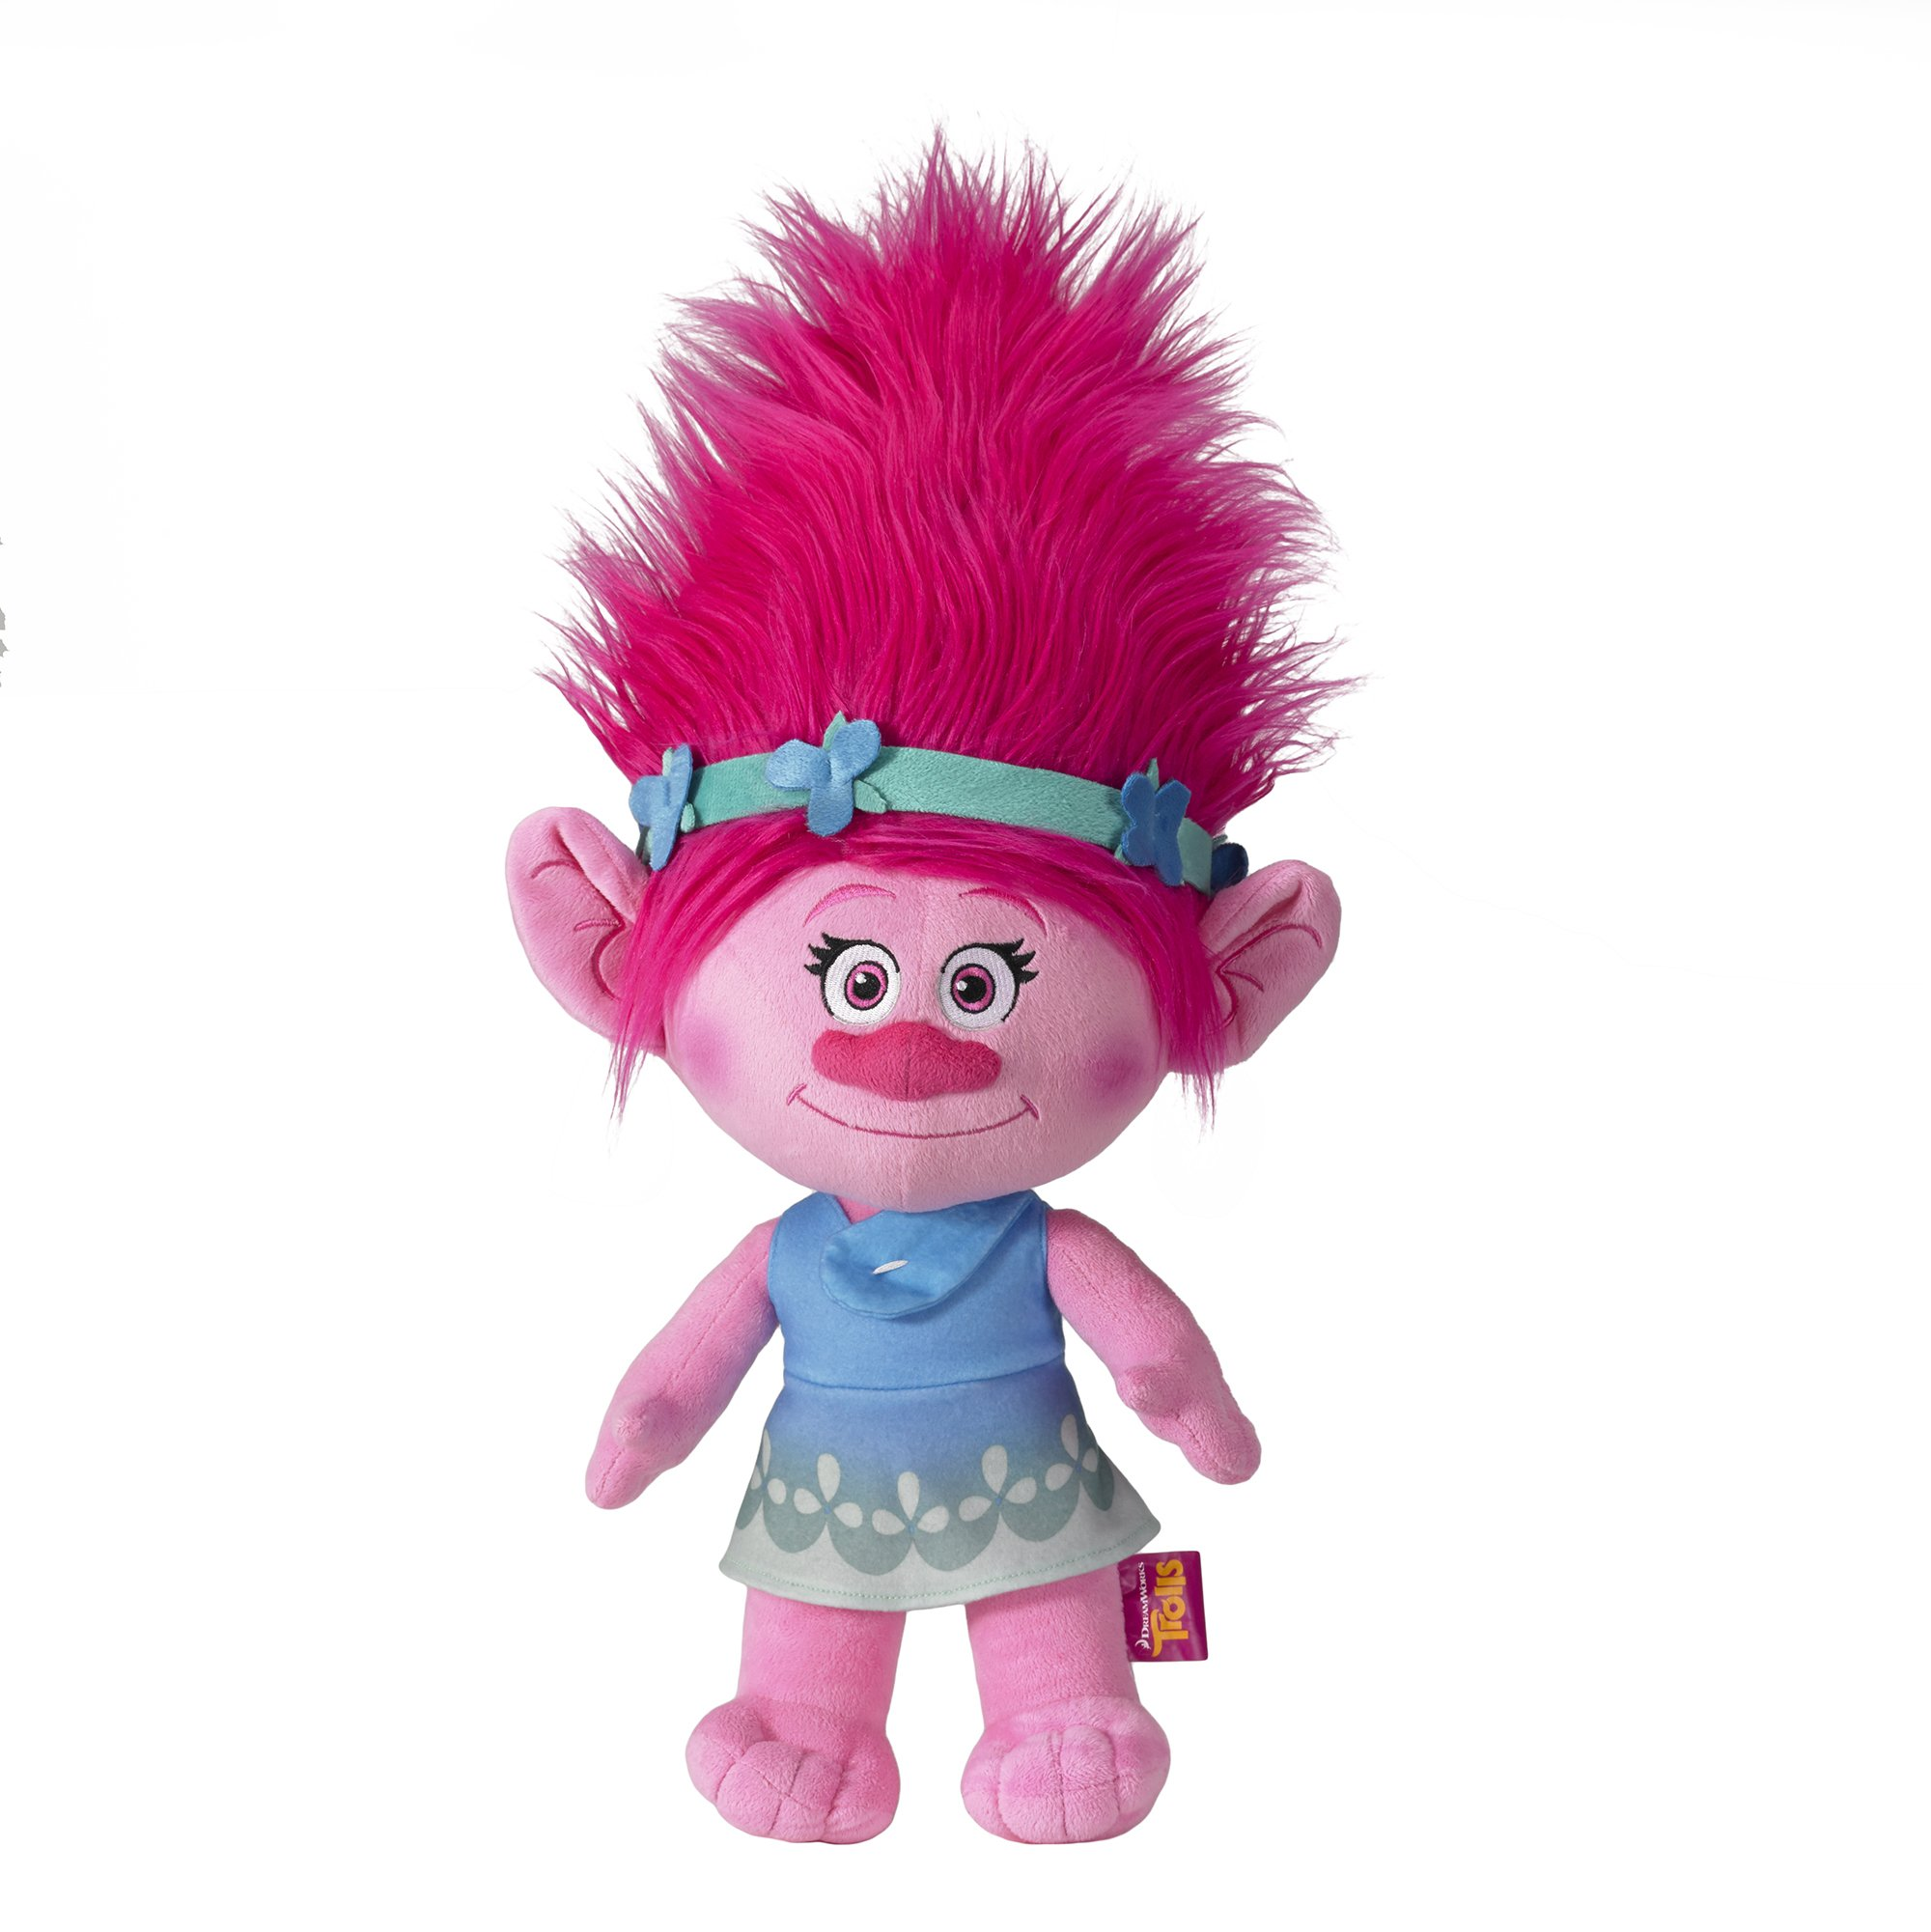 Dreamworks Troll Poppy Cuddle 22'' Pillow Pal by Dreamworks